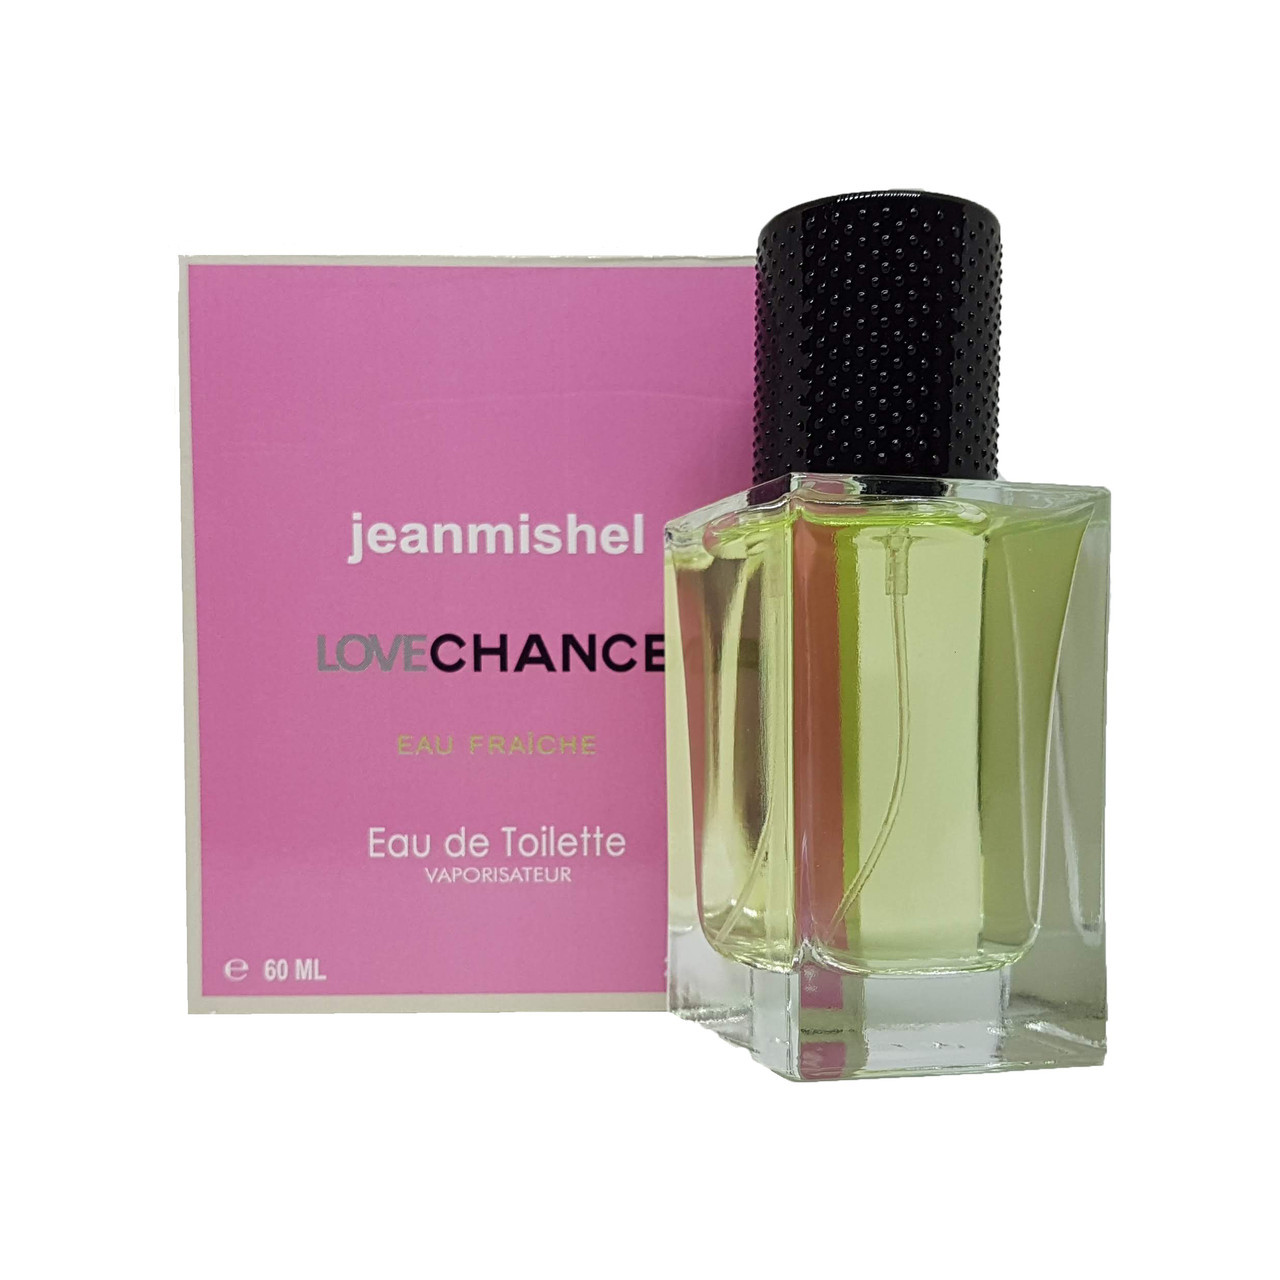 Jeanmishel Love Chance Eau Fraiche (13) 60ml